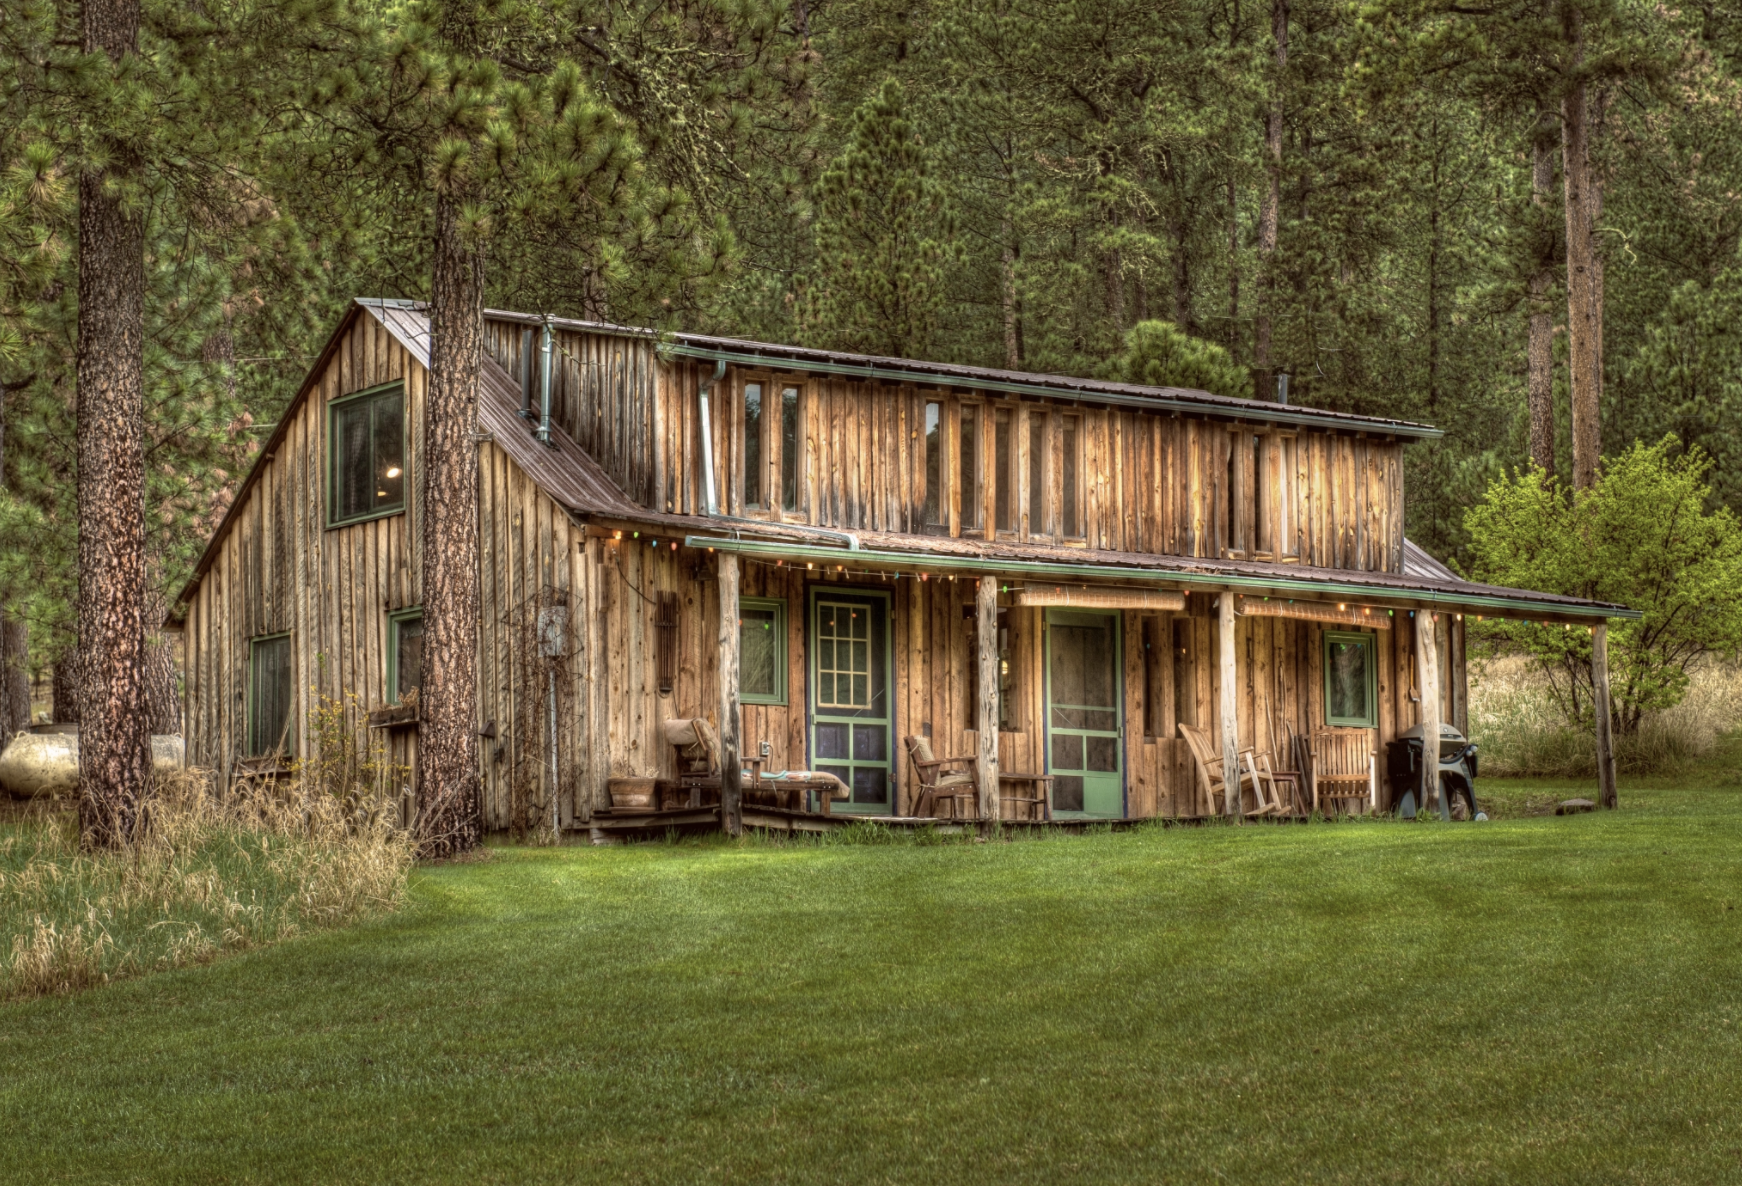 Check out the Midwest's most lusted-after Airbnb properties